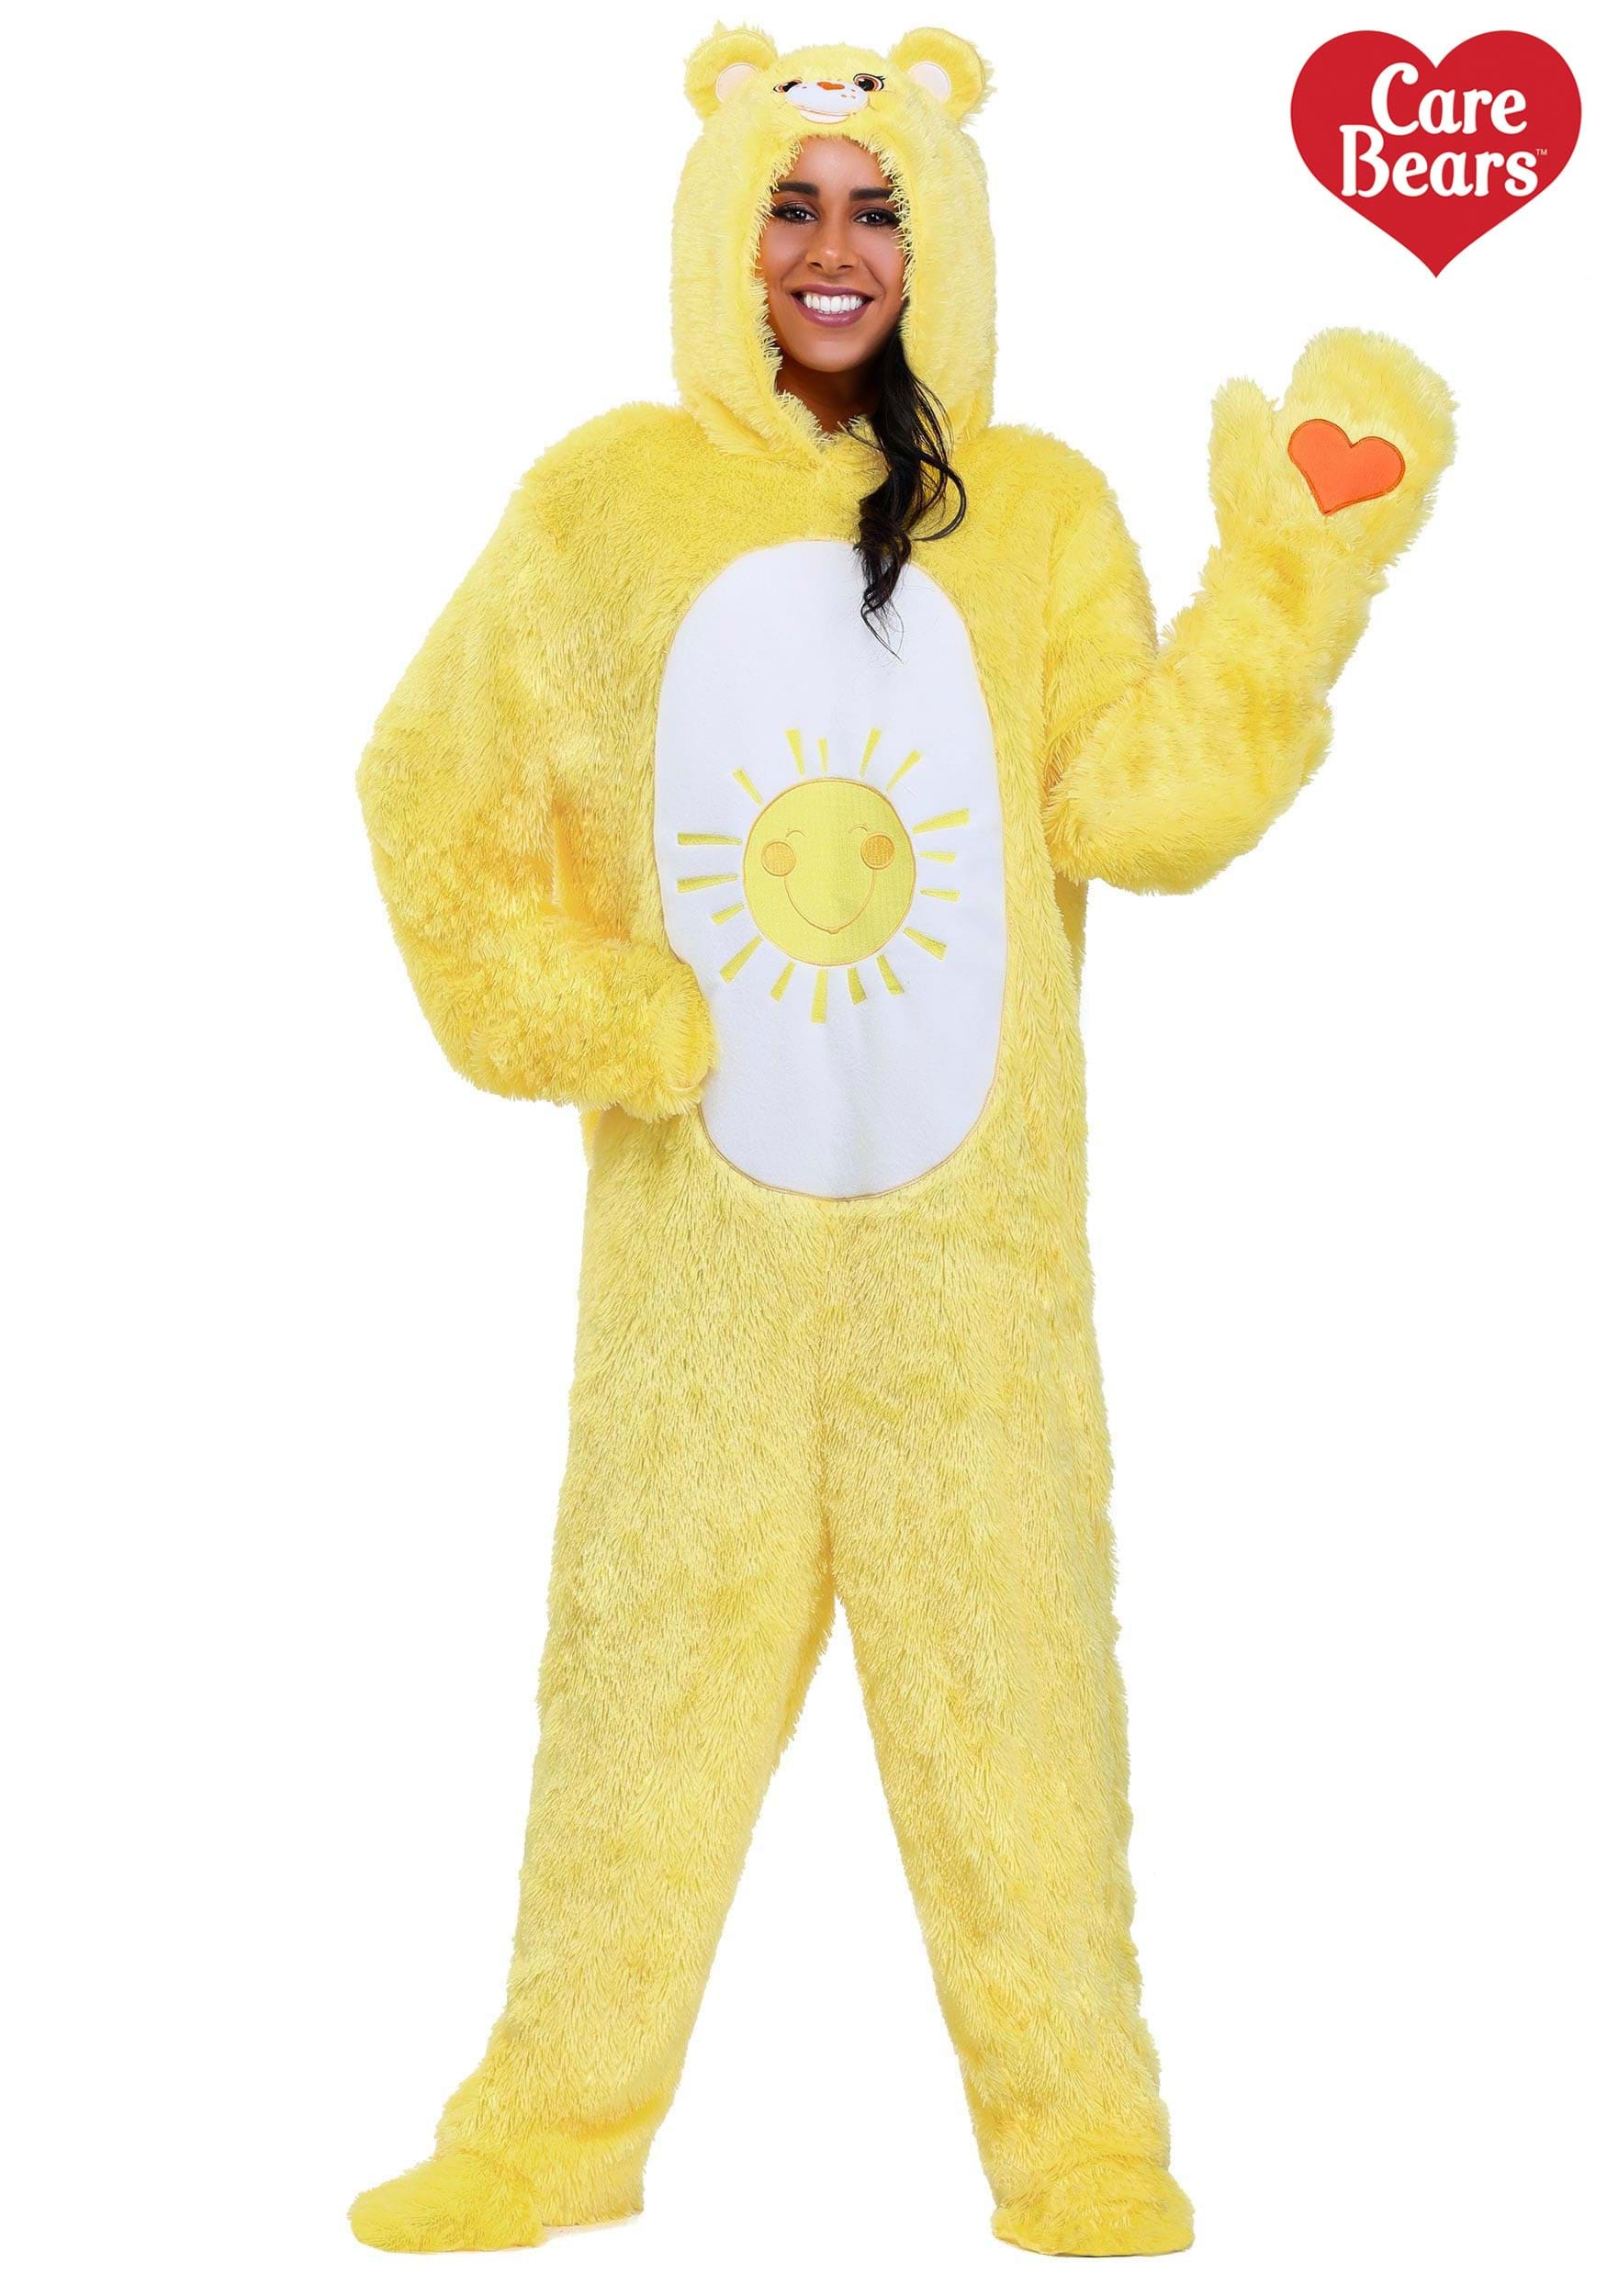 4221ff64a9ba Care Bears Adult Classic Funshine Bear Costume